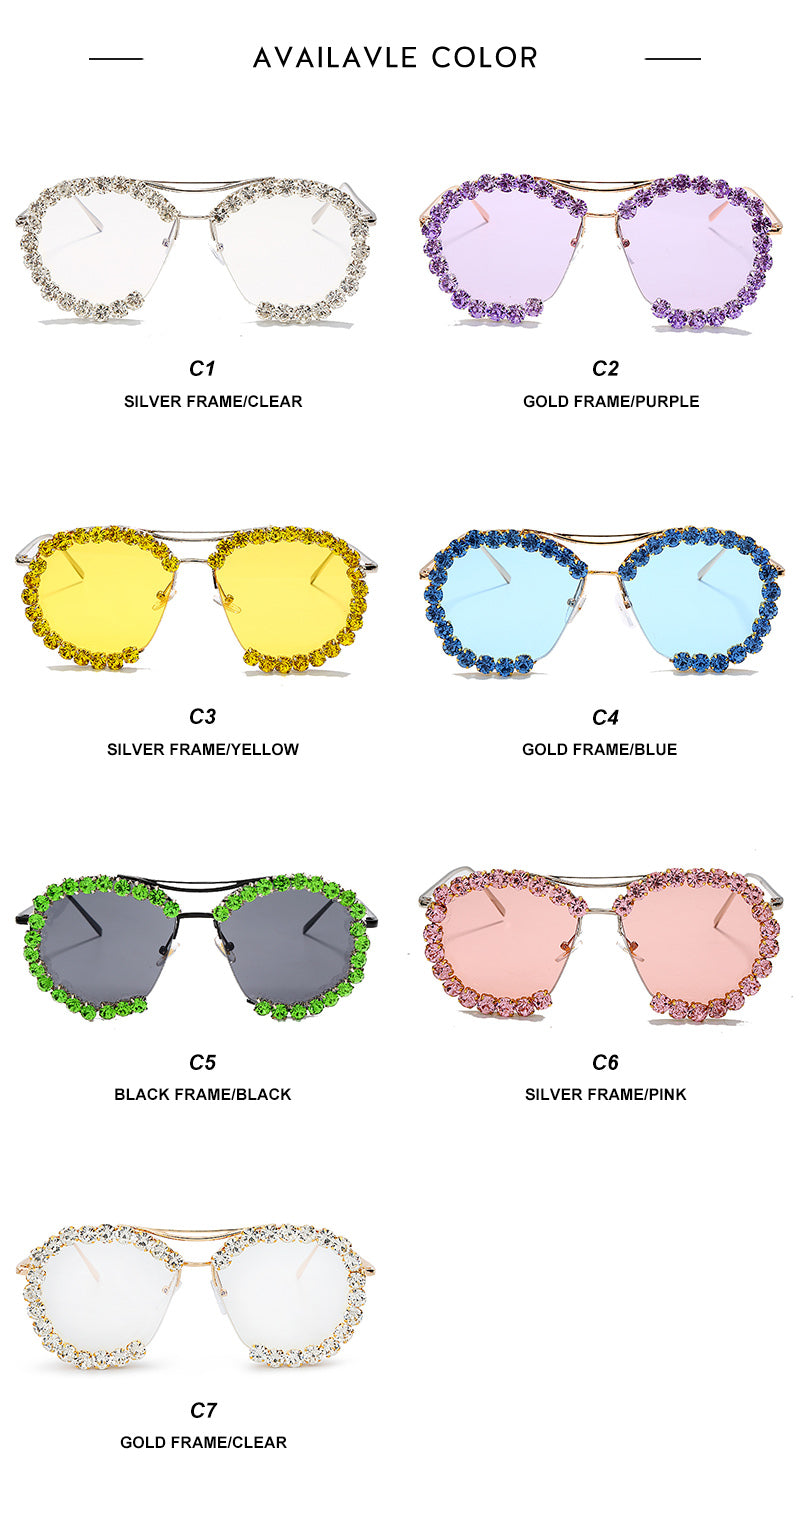 Women's Sunglasses Oversized Diamond Vintage Retro Metal Clear Lens Round GVD2088lq Ships From The USA